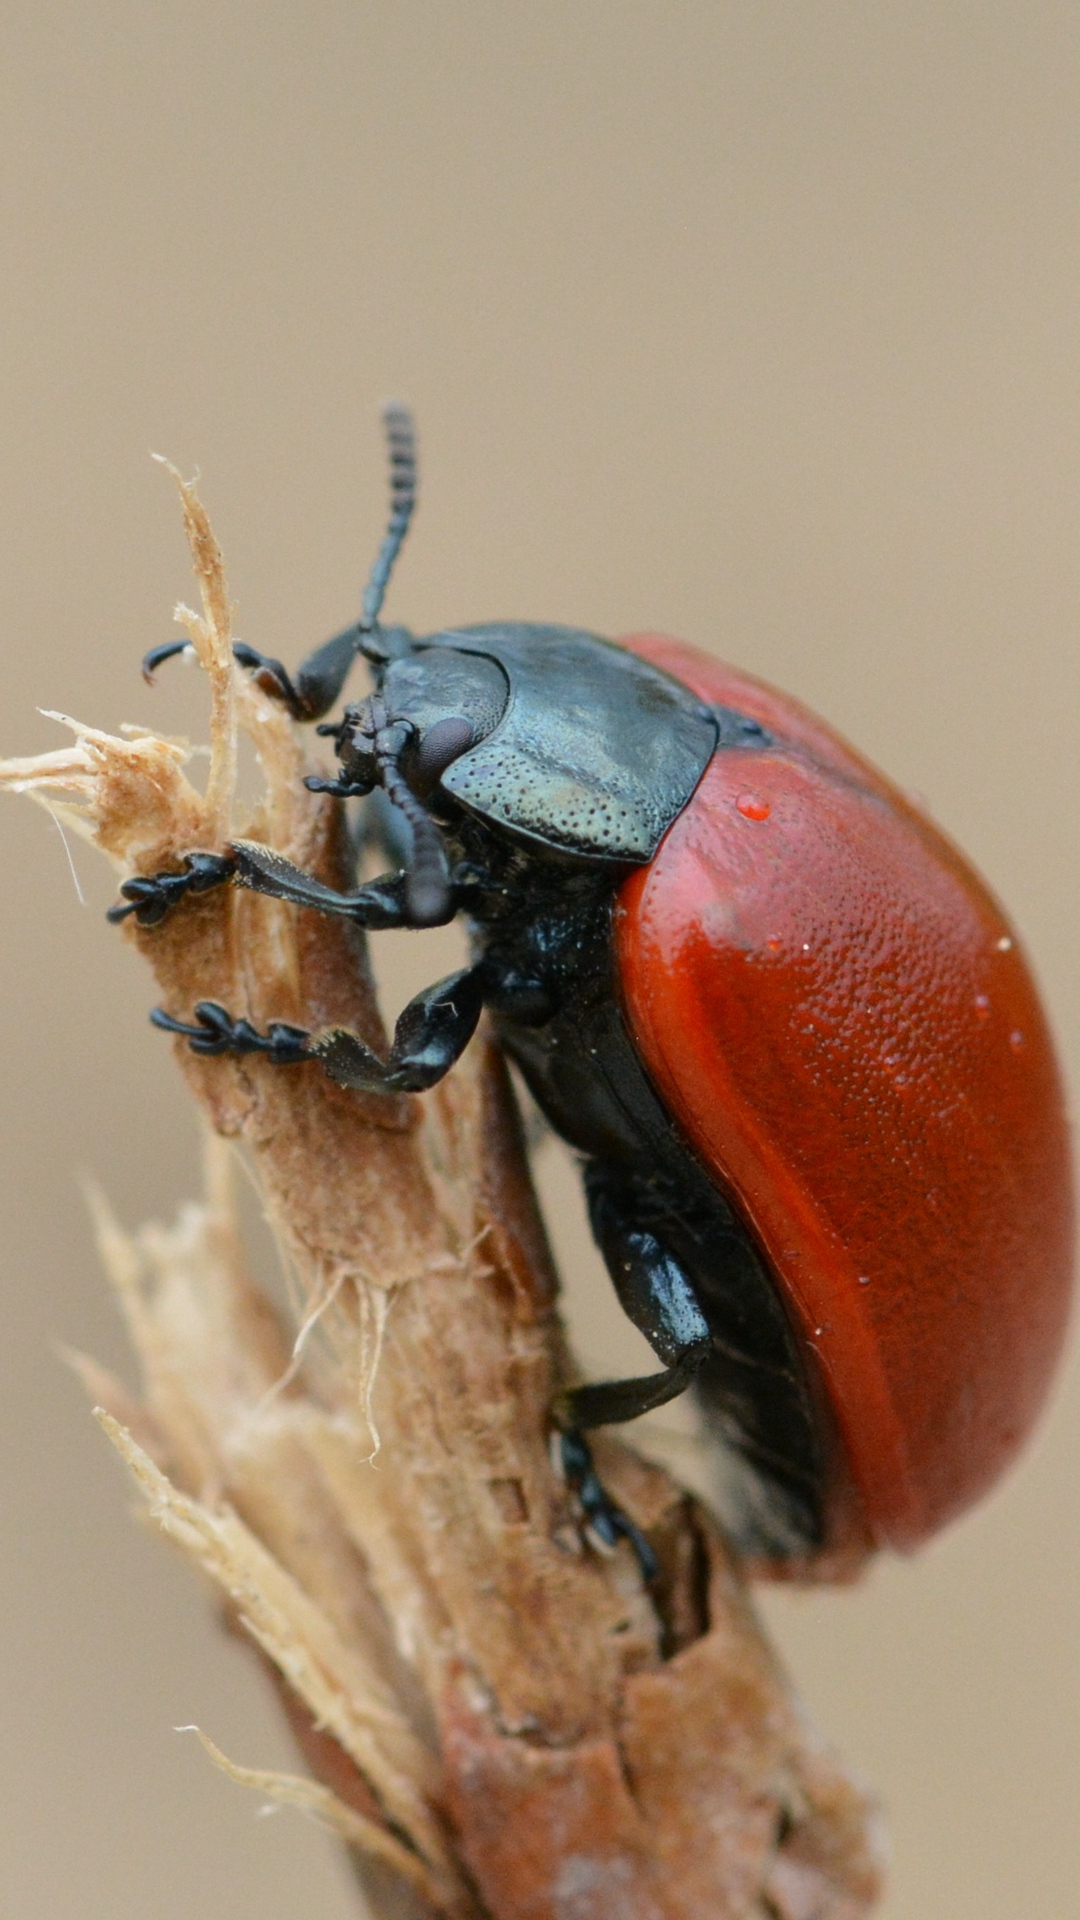 Download wallpapers 1080x1920 beetle, insect, armor, branch